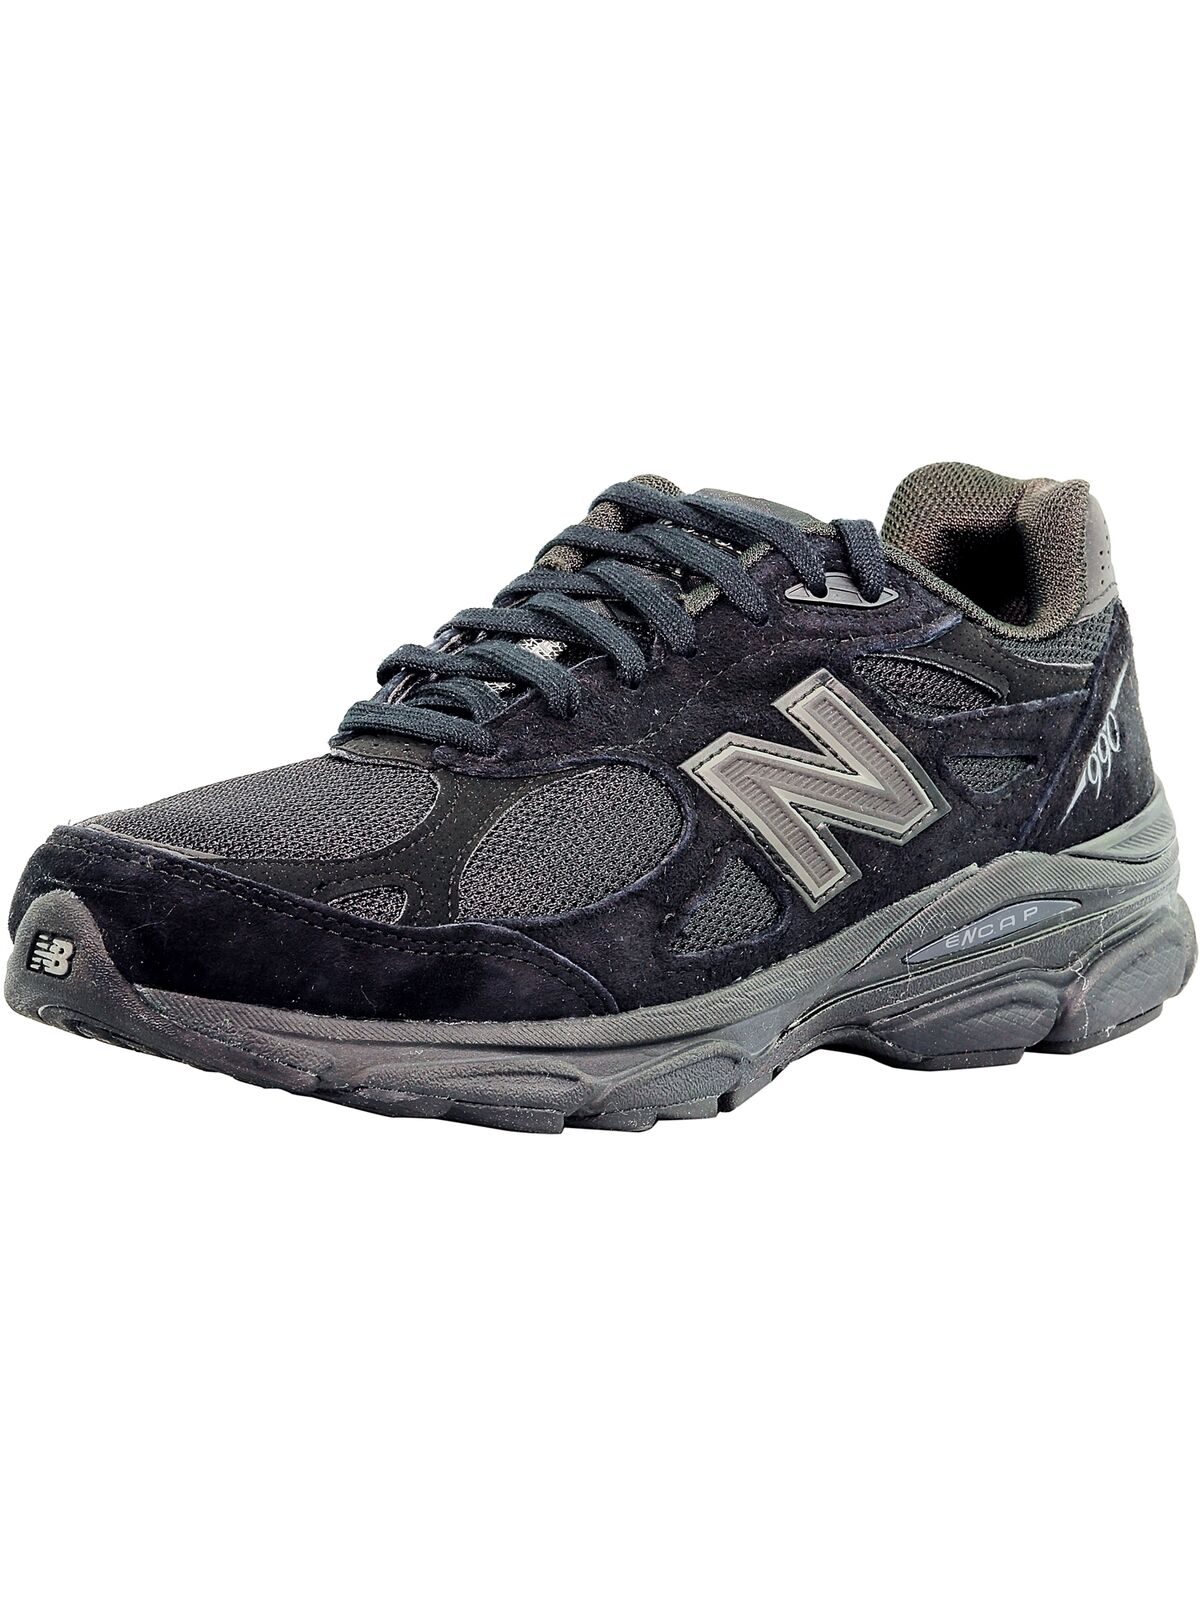 New Balance Men's M990 Ankle-High Leather Running shoes